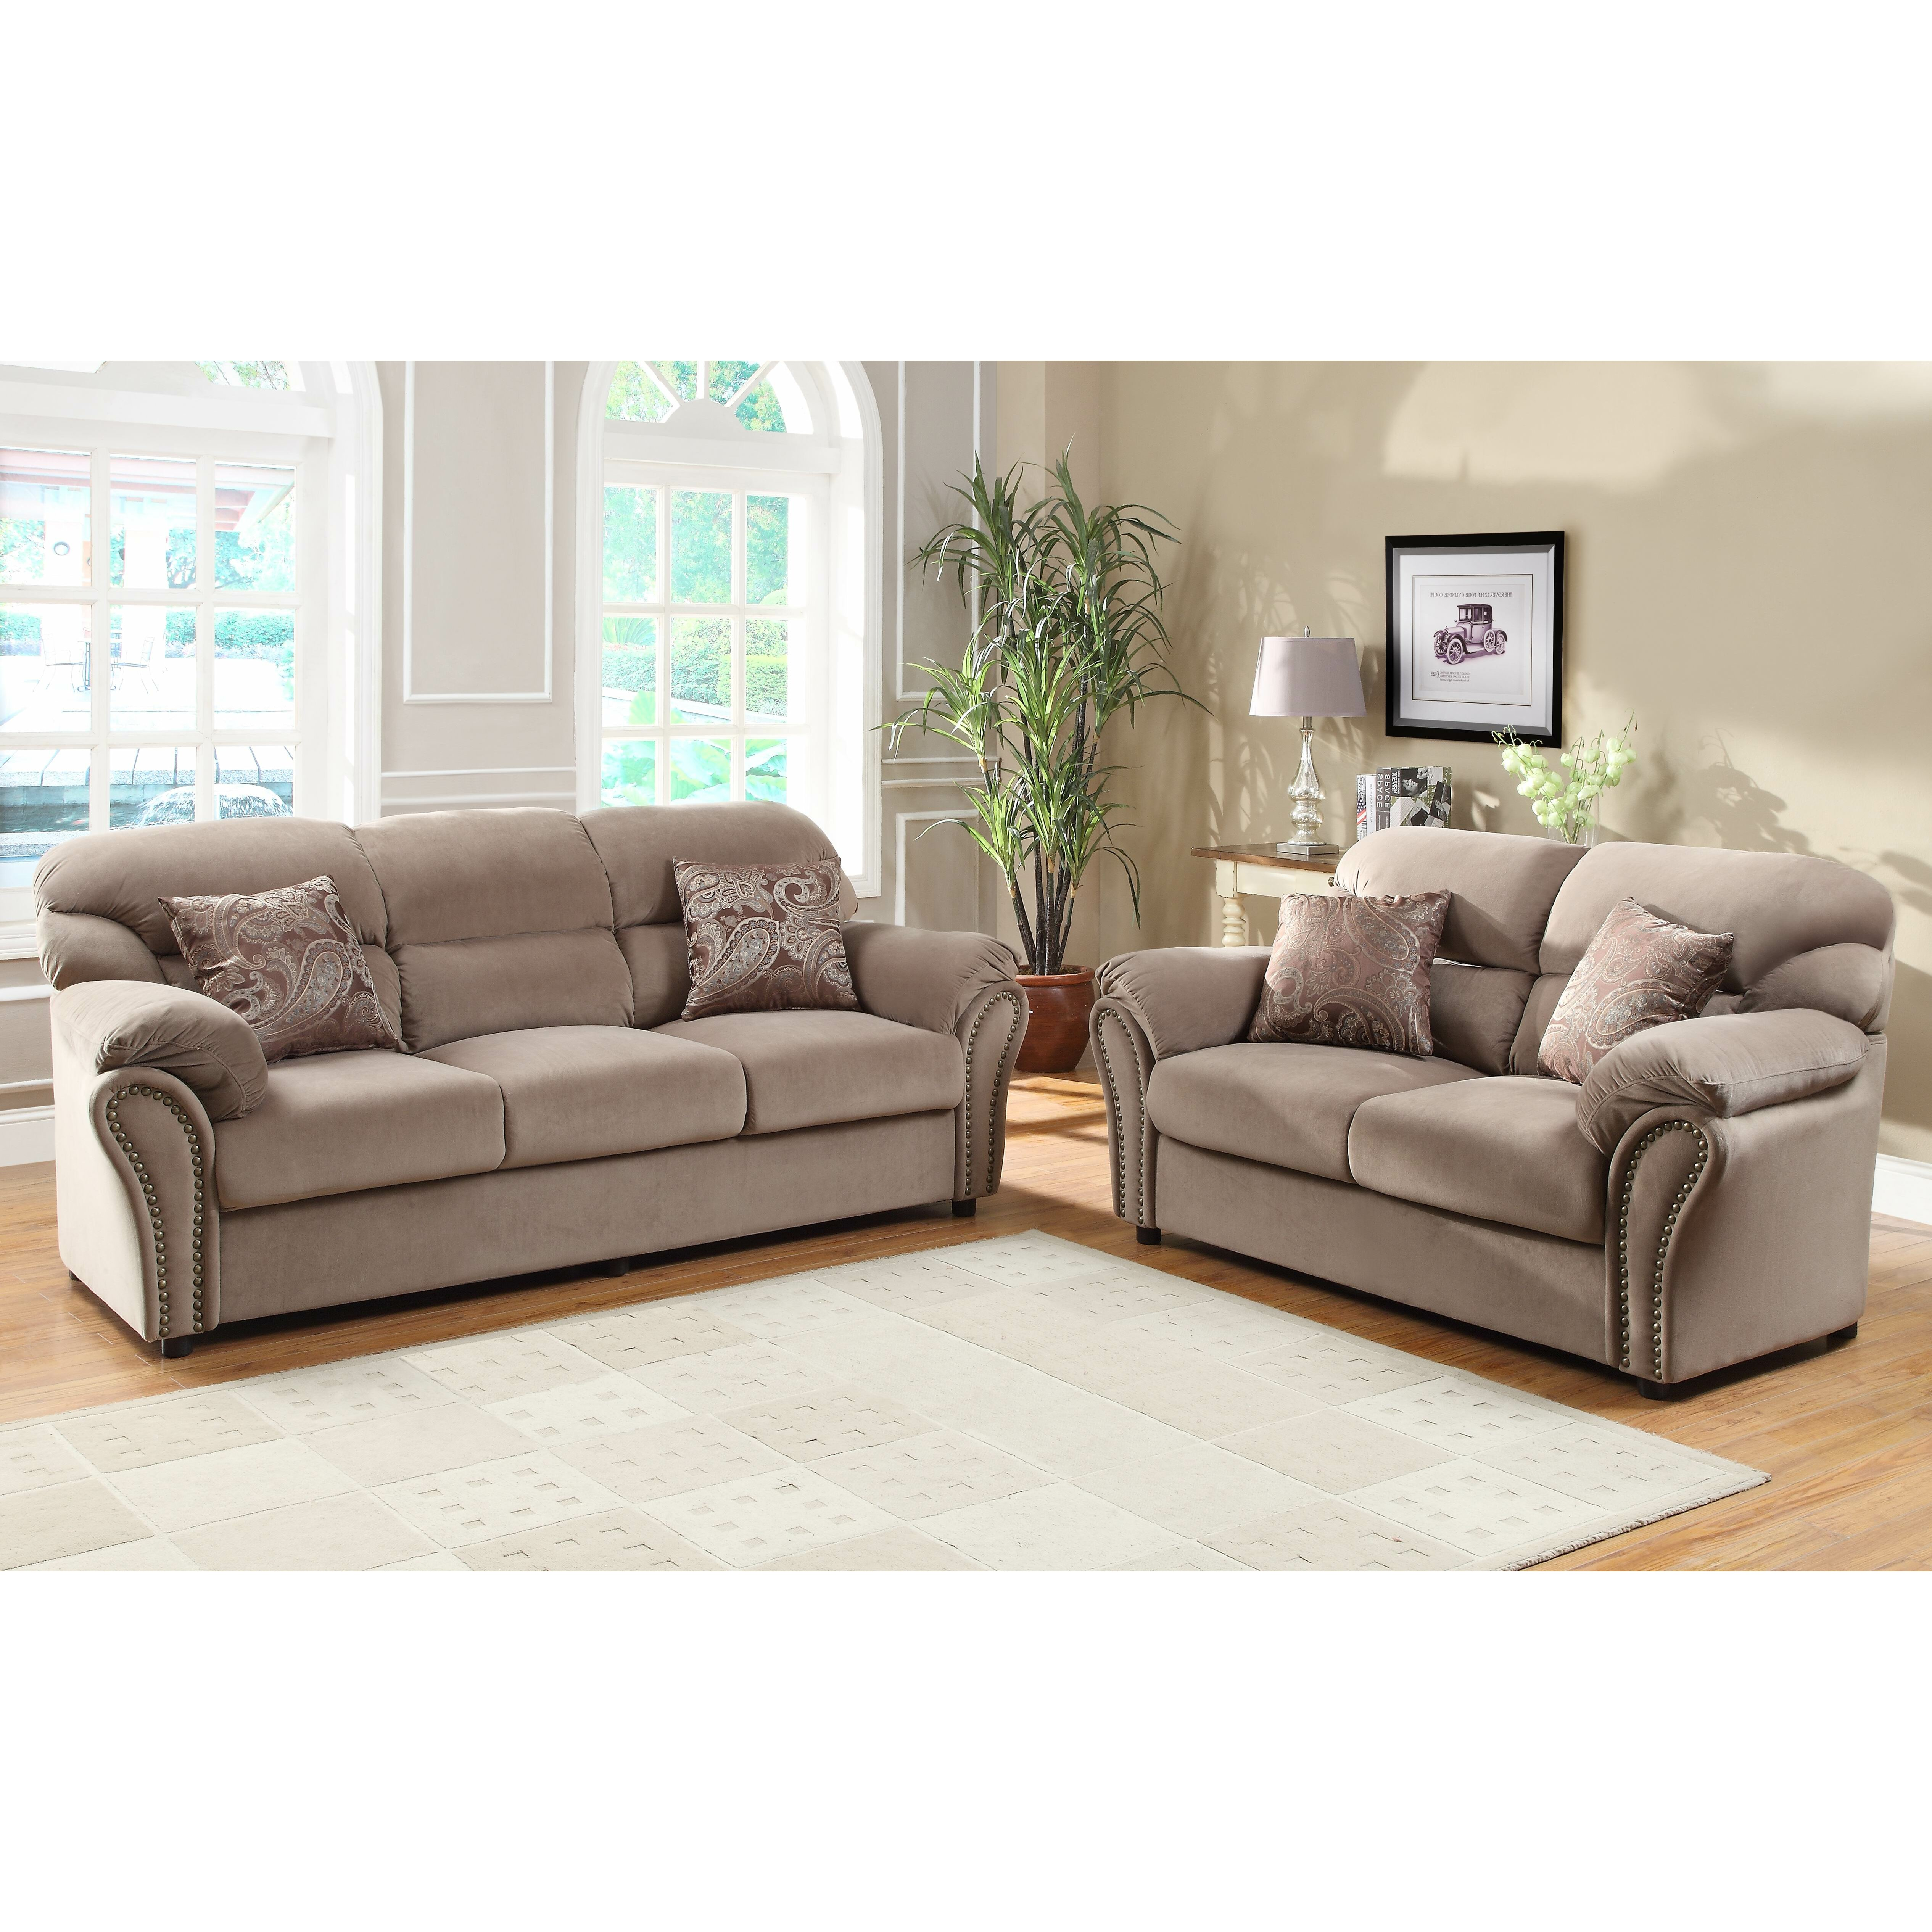 Woodhaven Hill Valentina Living Room Collection Reviews Wayfair